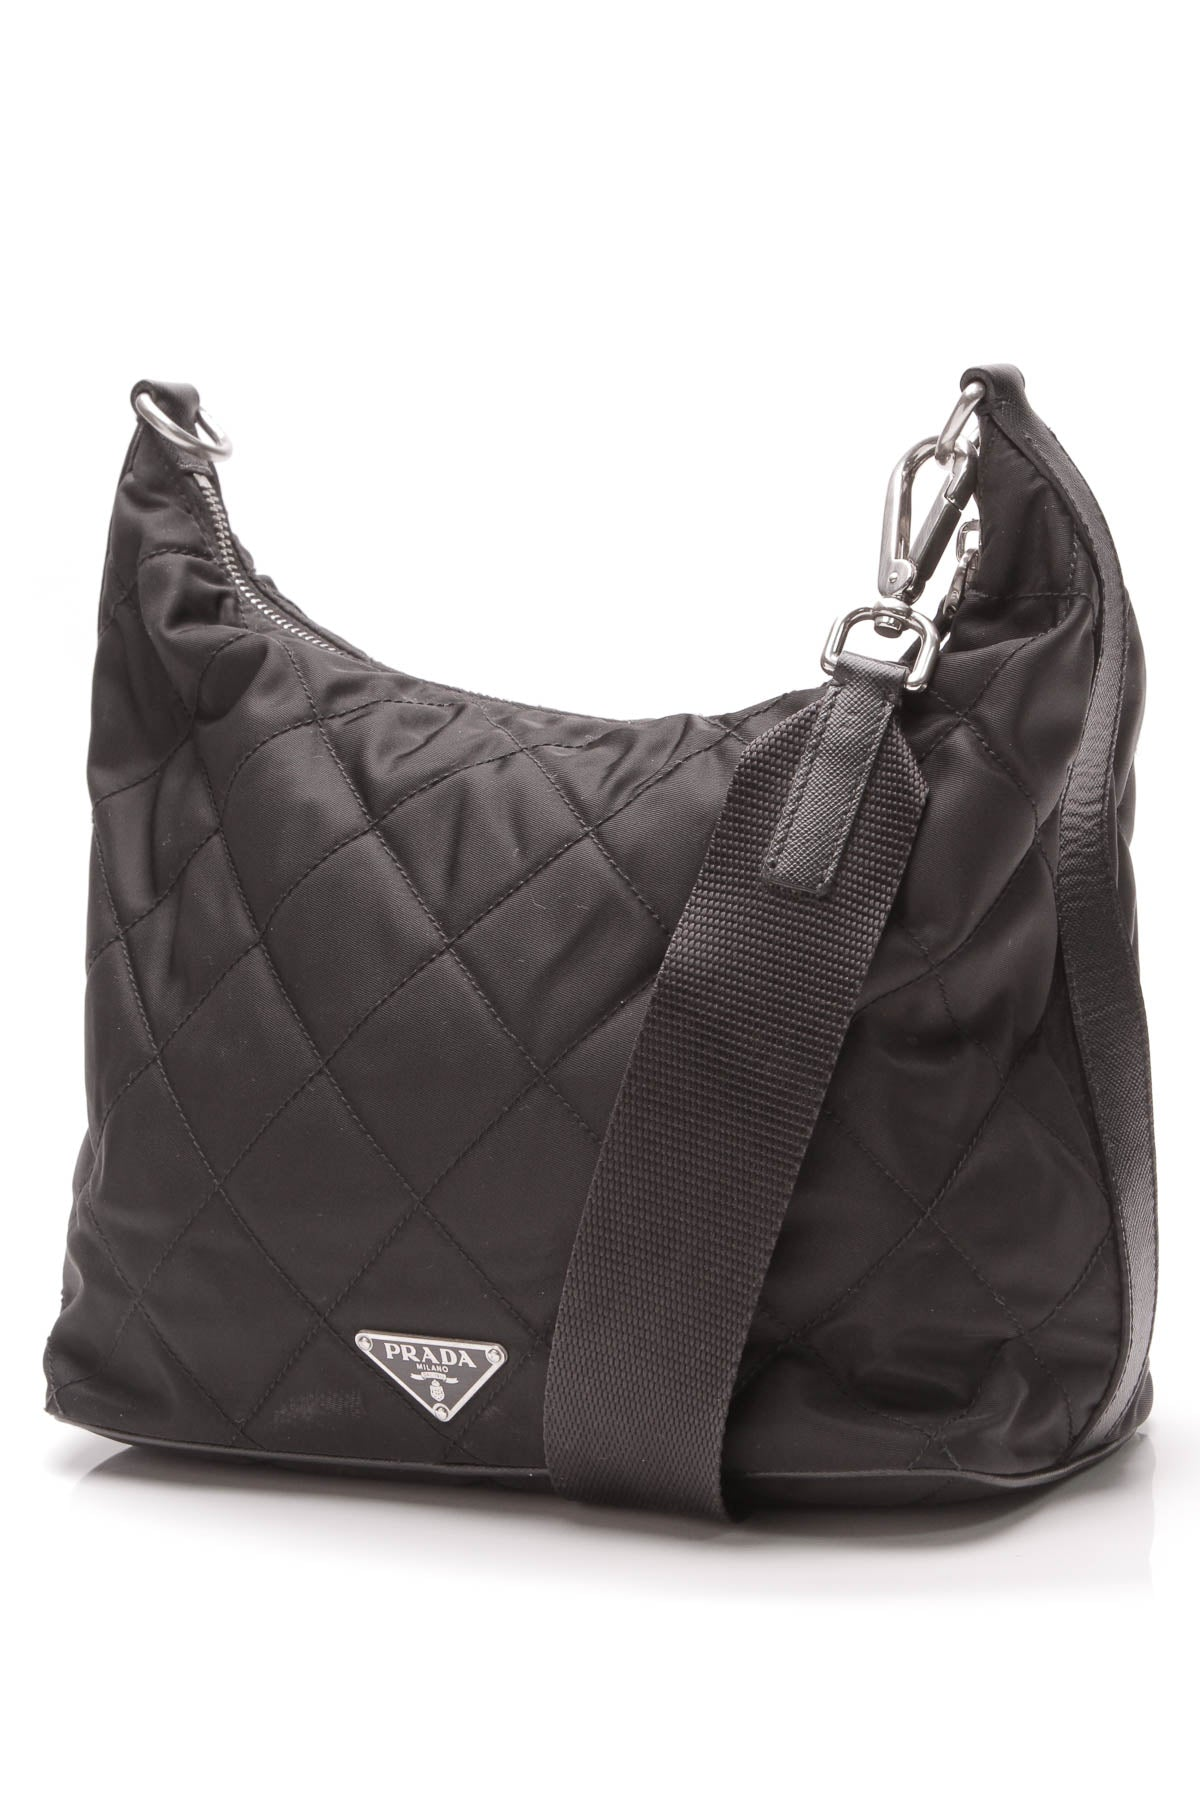 2bf4ad3c Prada Quilted Shoulder Bag - Black Nylon – Couture USA